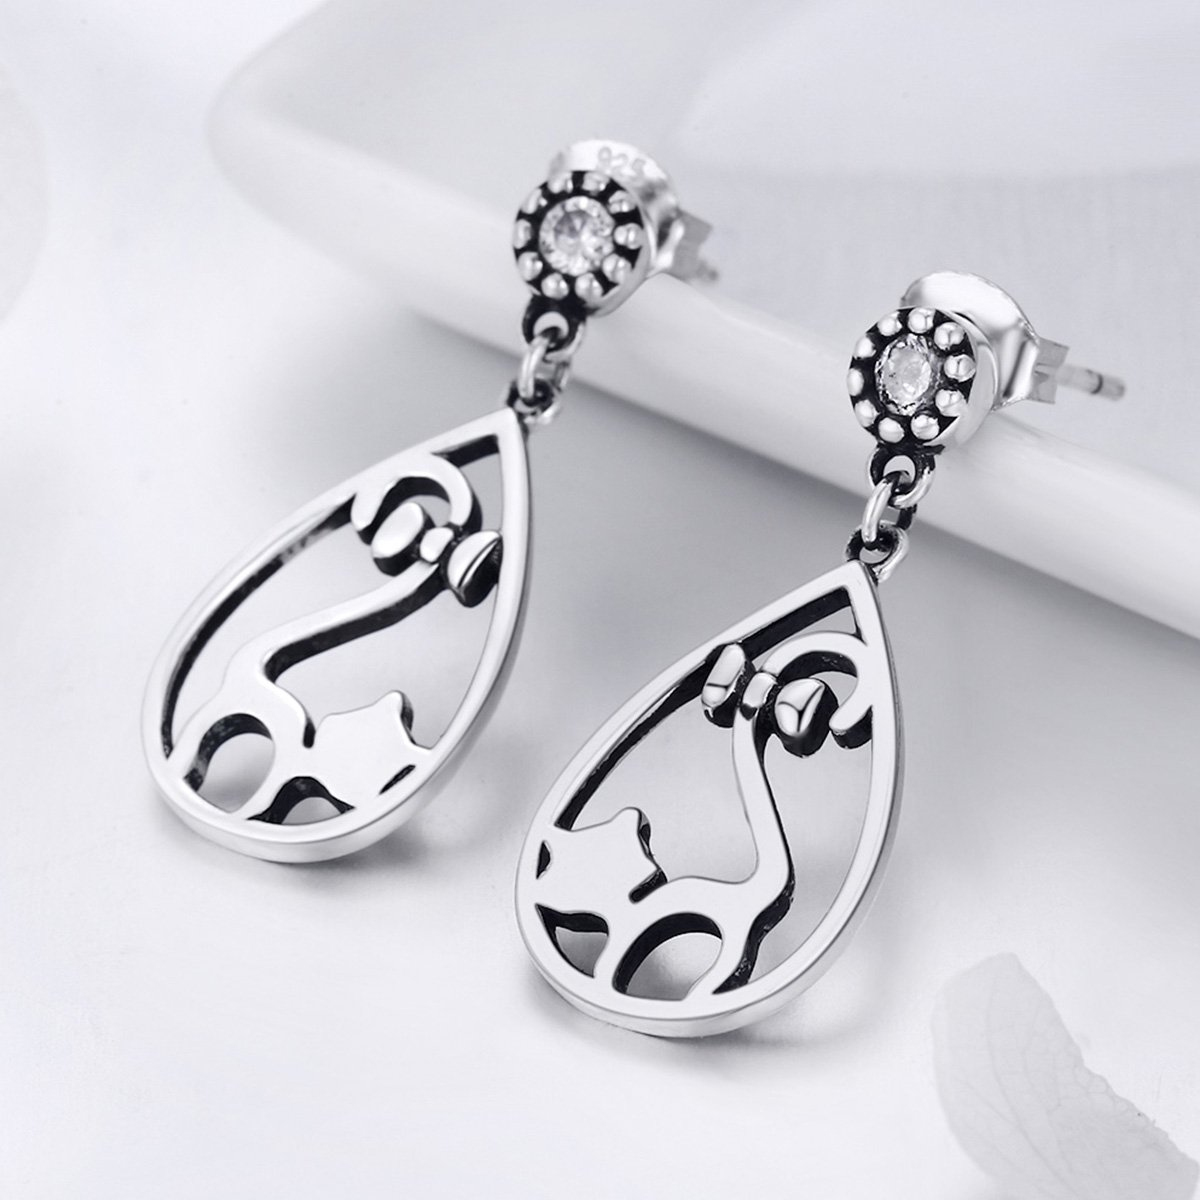 The Kiss Naughty Cat with Bowknot CZ 925 Sterling Silver Drop Earrings